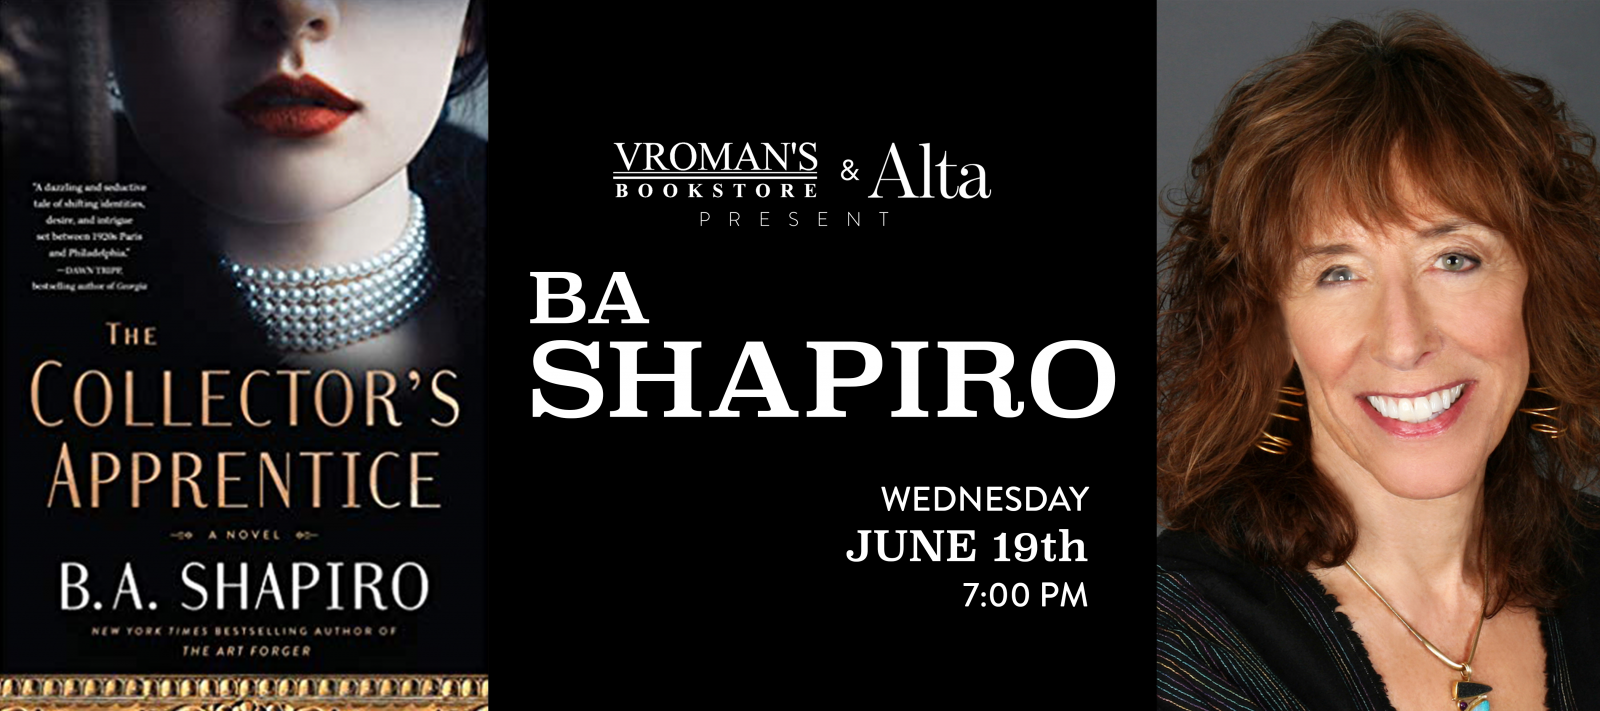 BA Shapiro book signing Wednesday June 19th at 7pm